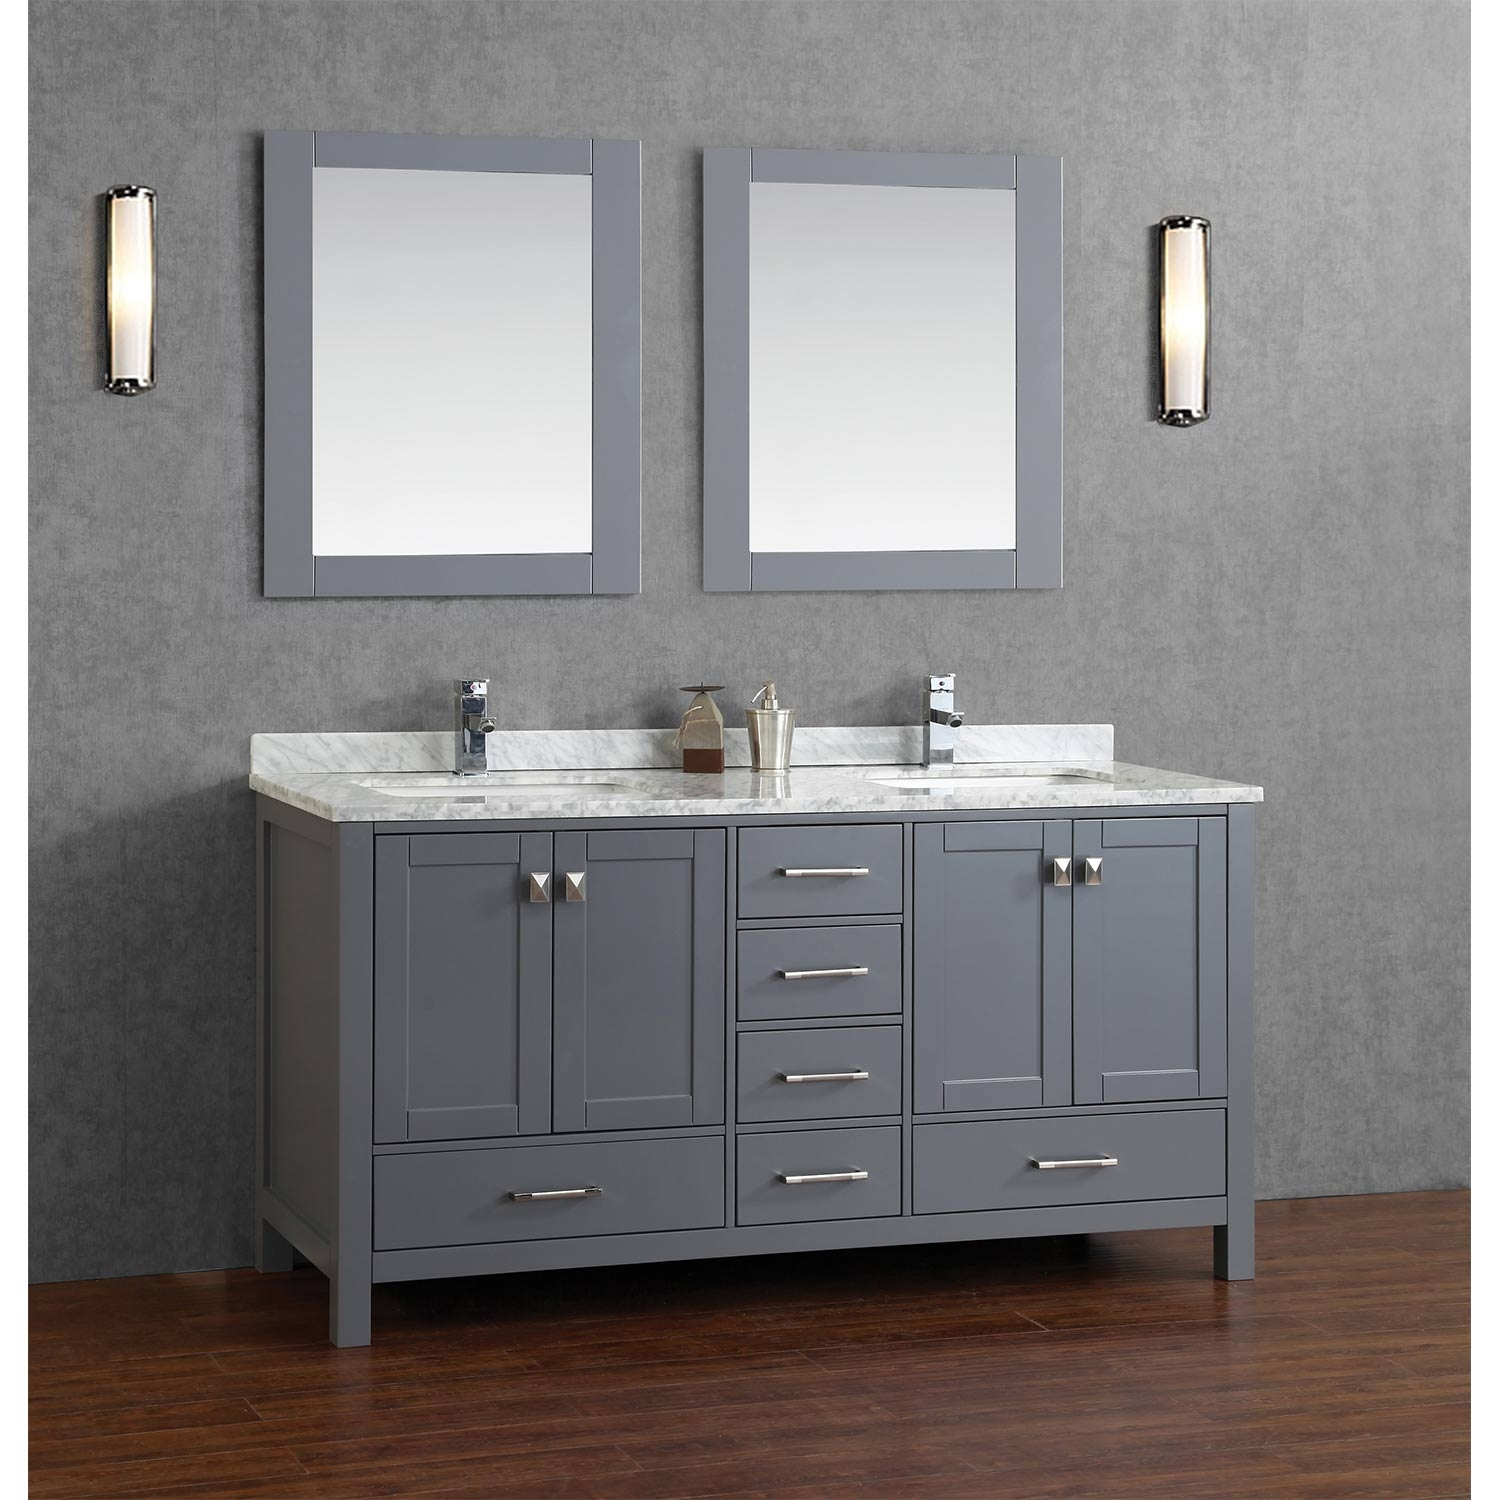 Bathroom Vanity Cabinets 2 Sinks